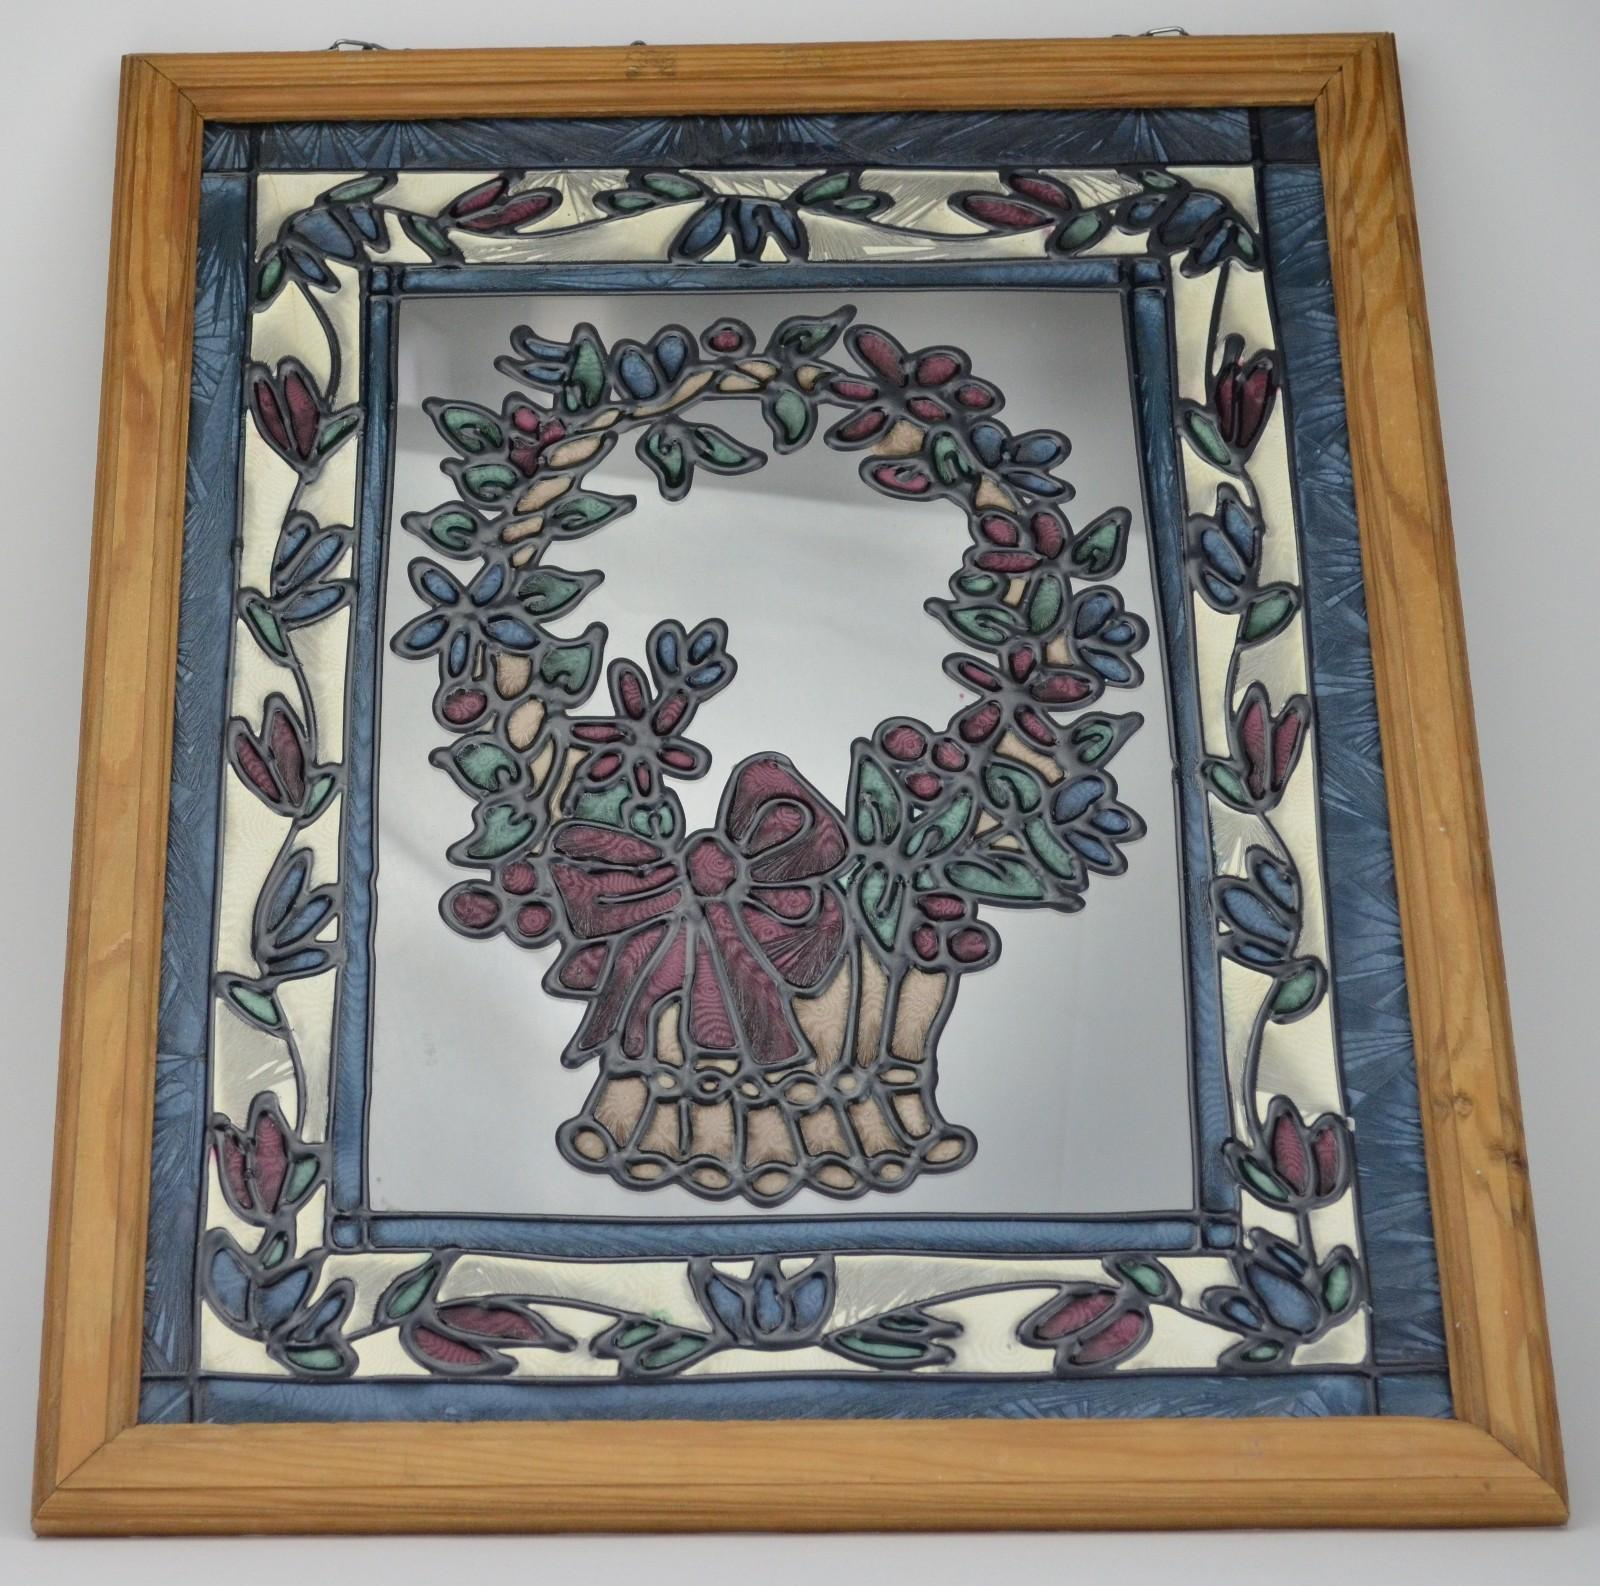 Stained Glass Style Window Decoration Basket Design Wall